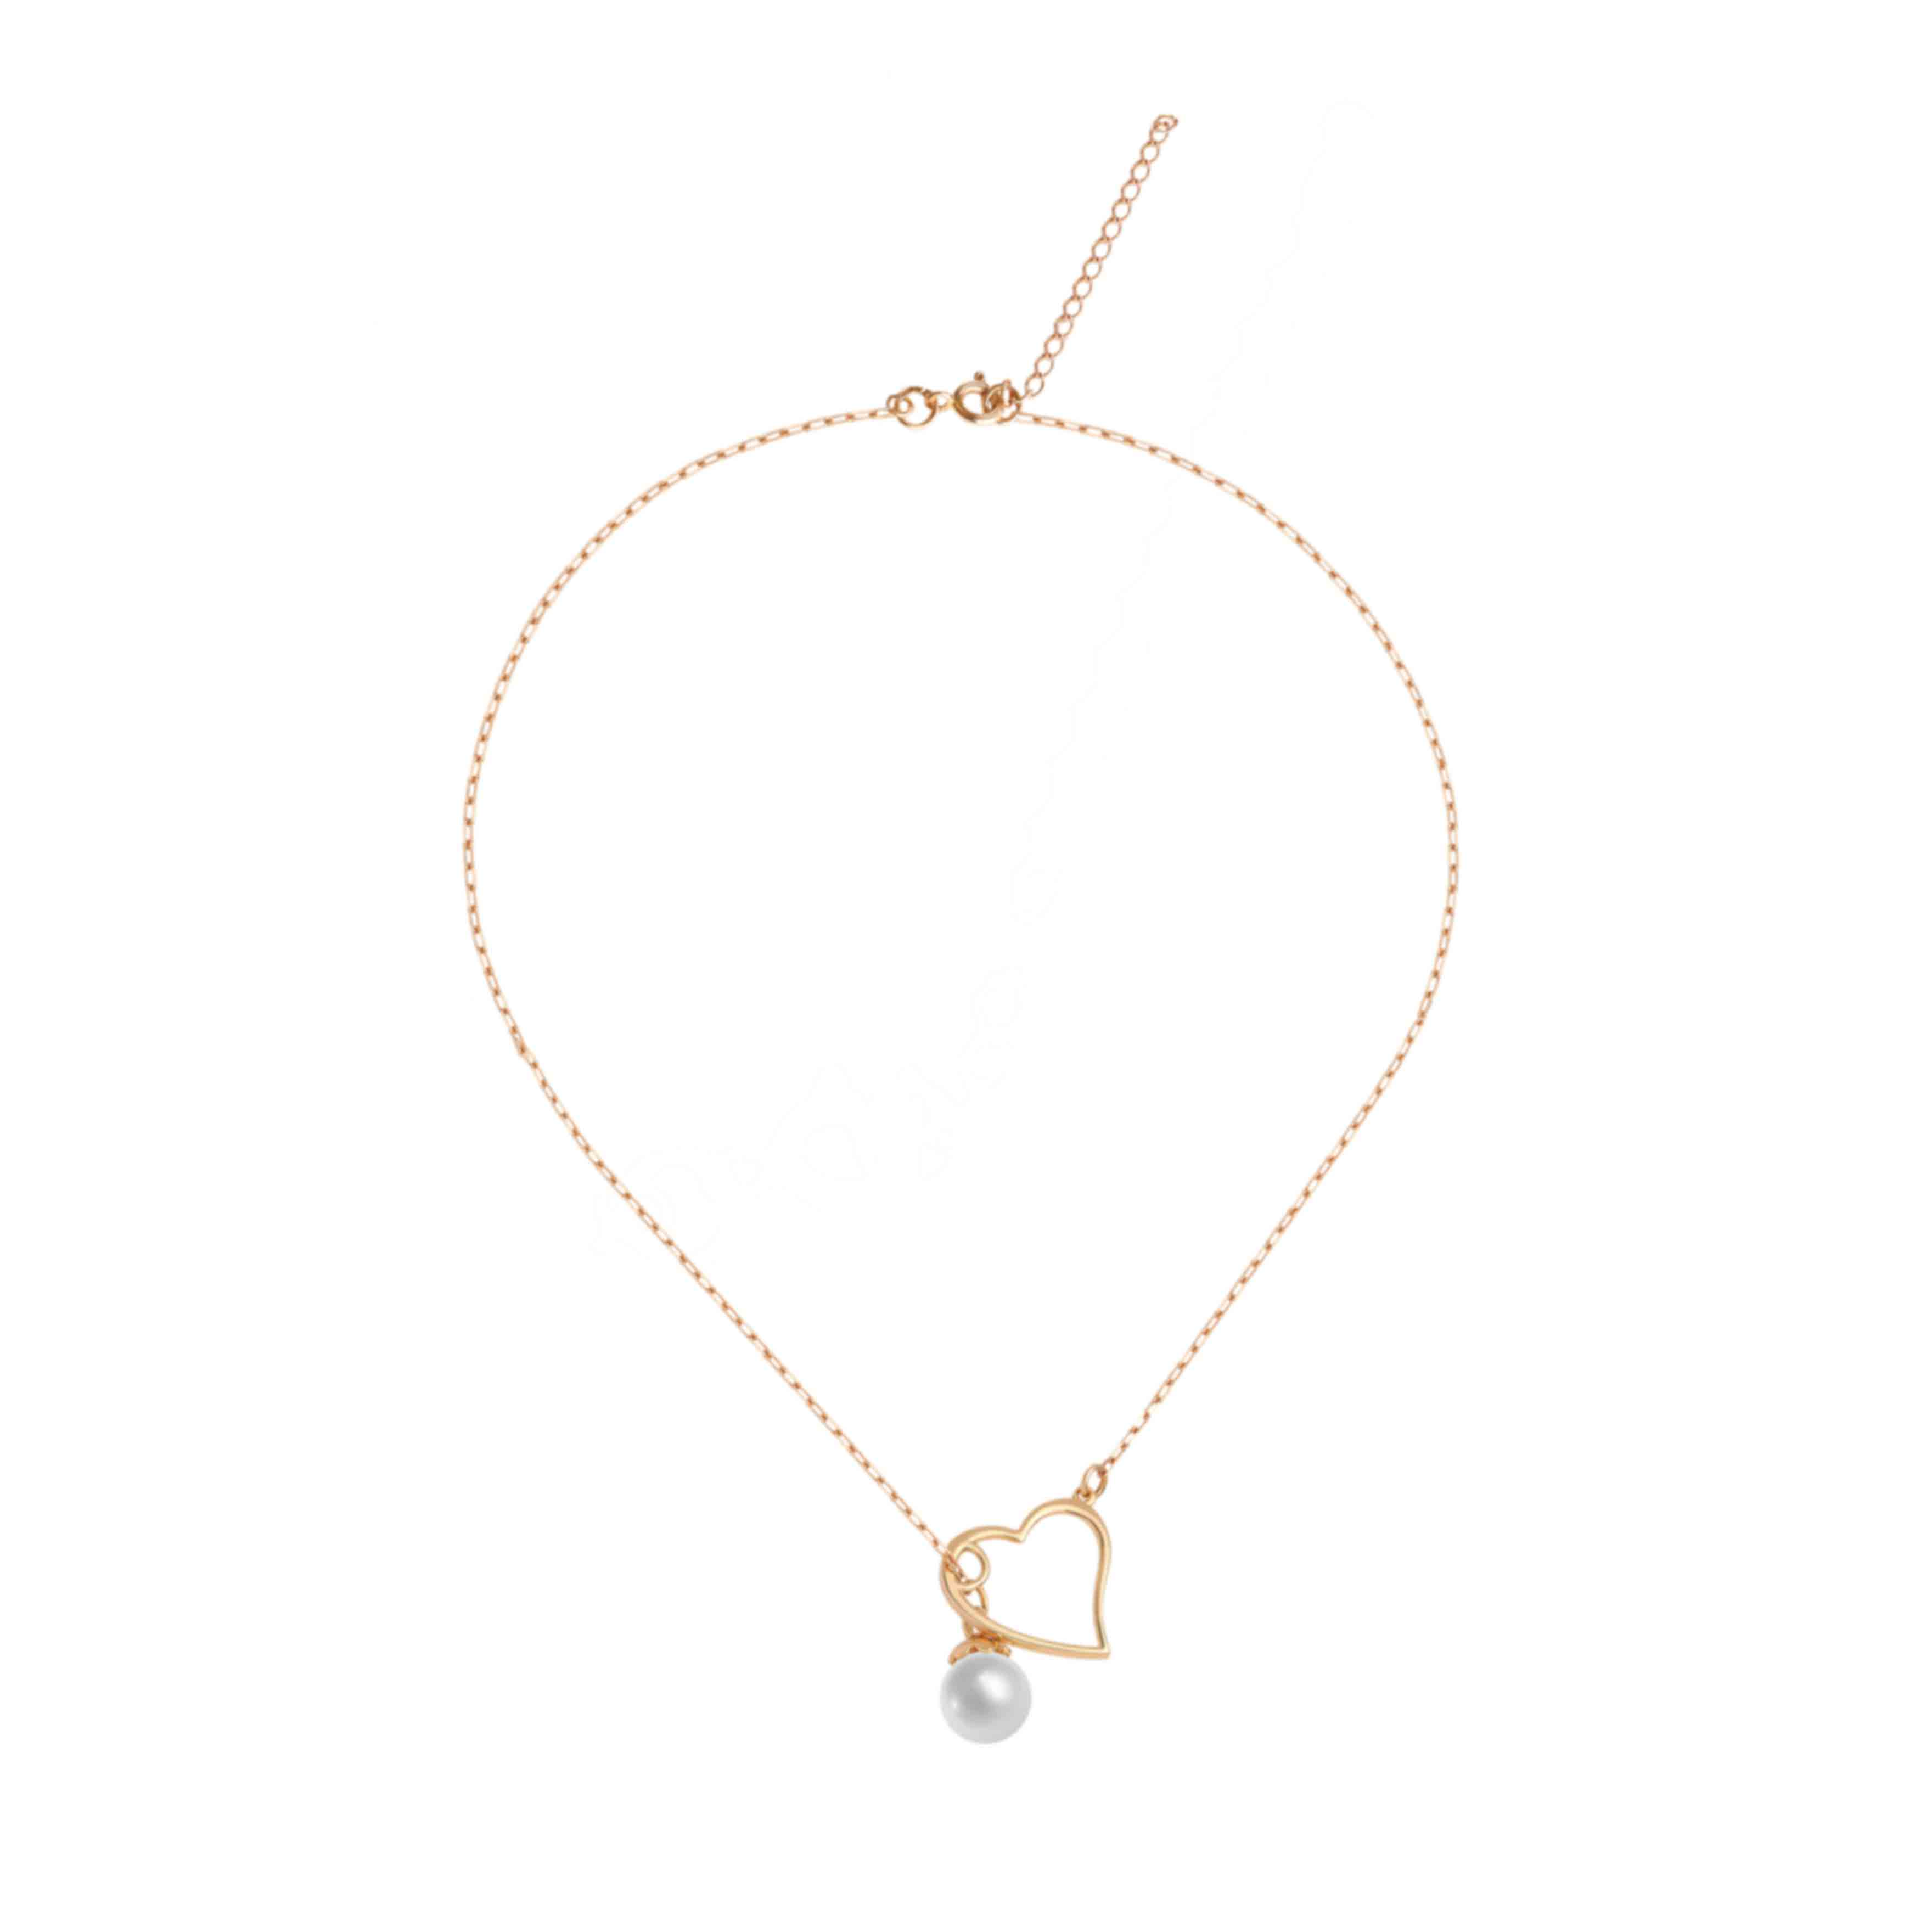 Pearl and Heart Adjustable Necklace